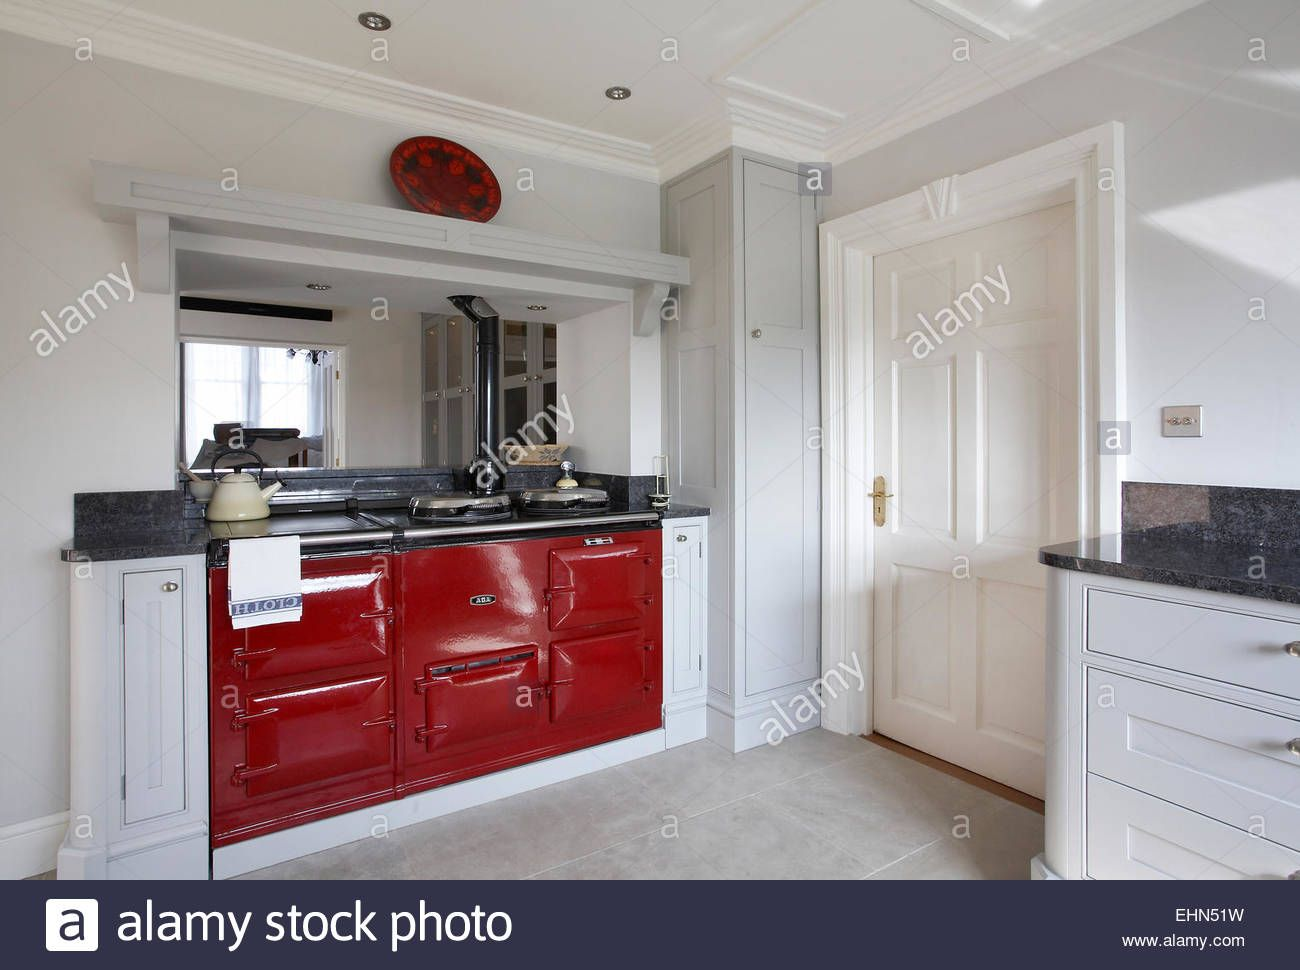 a red aga cooker in a modern kitchen in a home in the uk stock photo